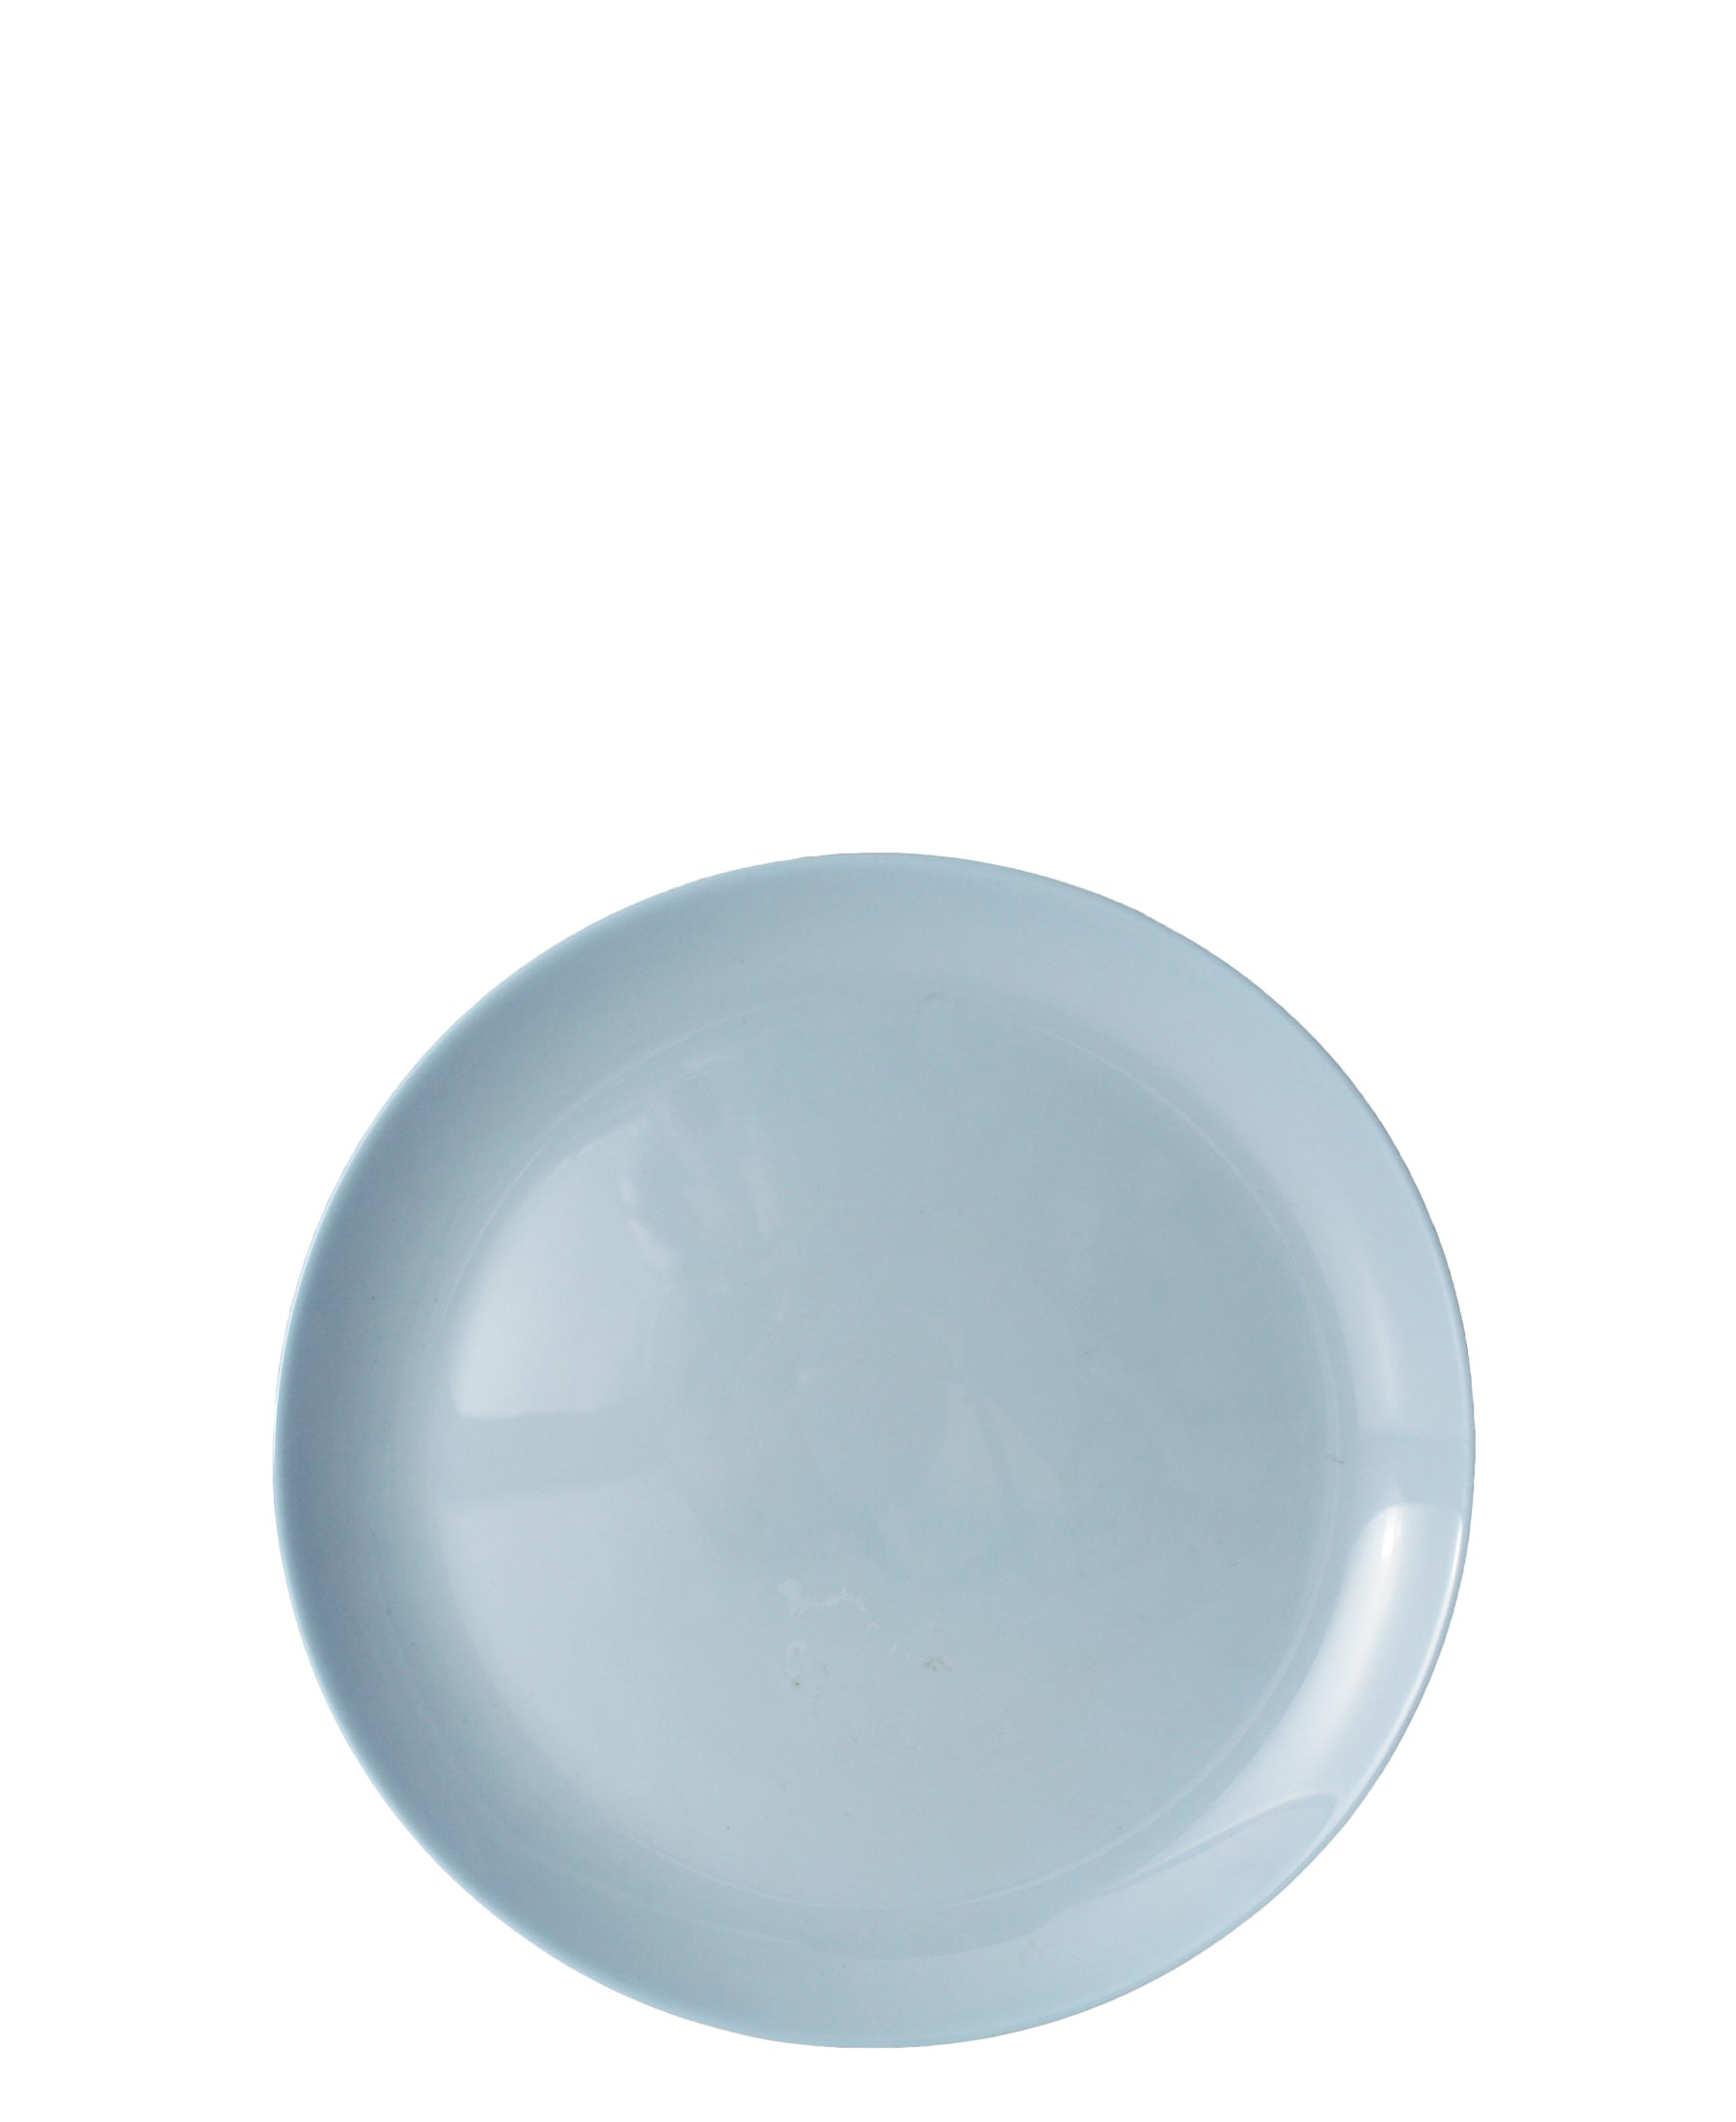 Luminarc Dinner Plate 25cm - Blue